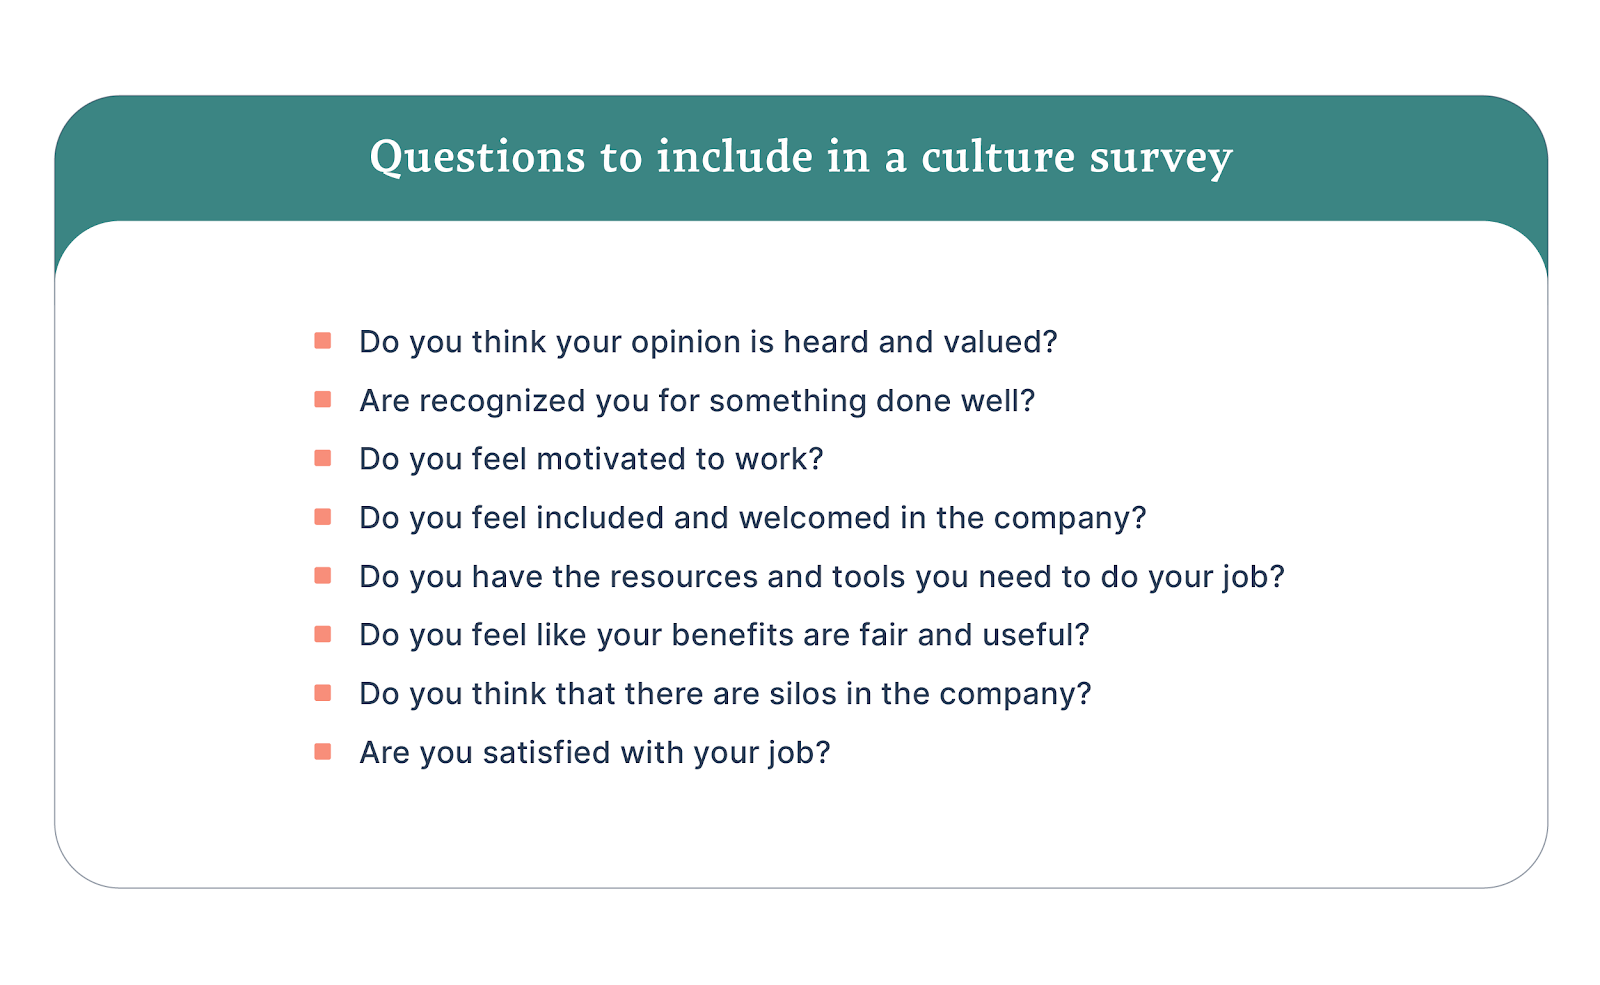 Questions to include in a culture survey